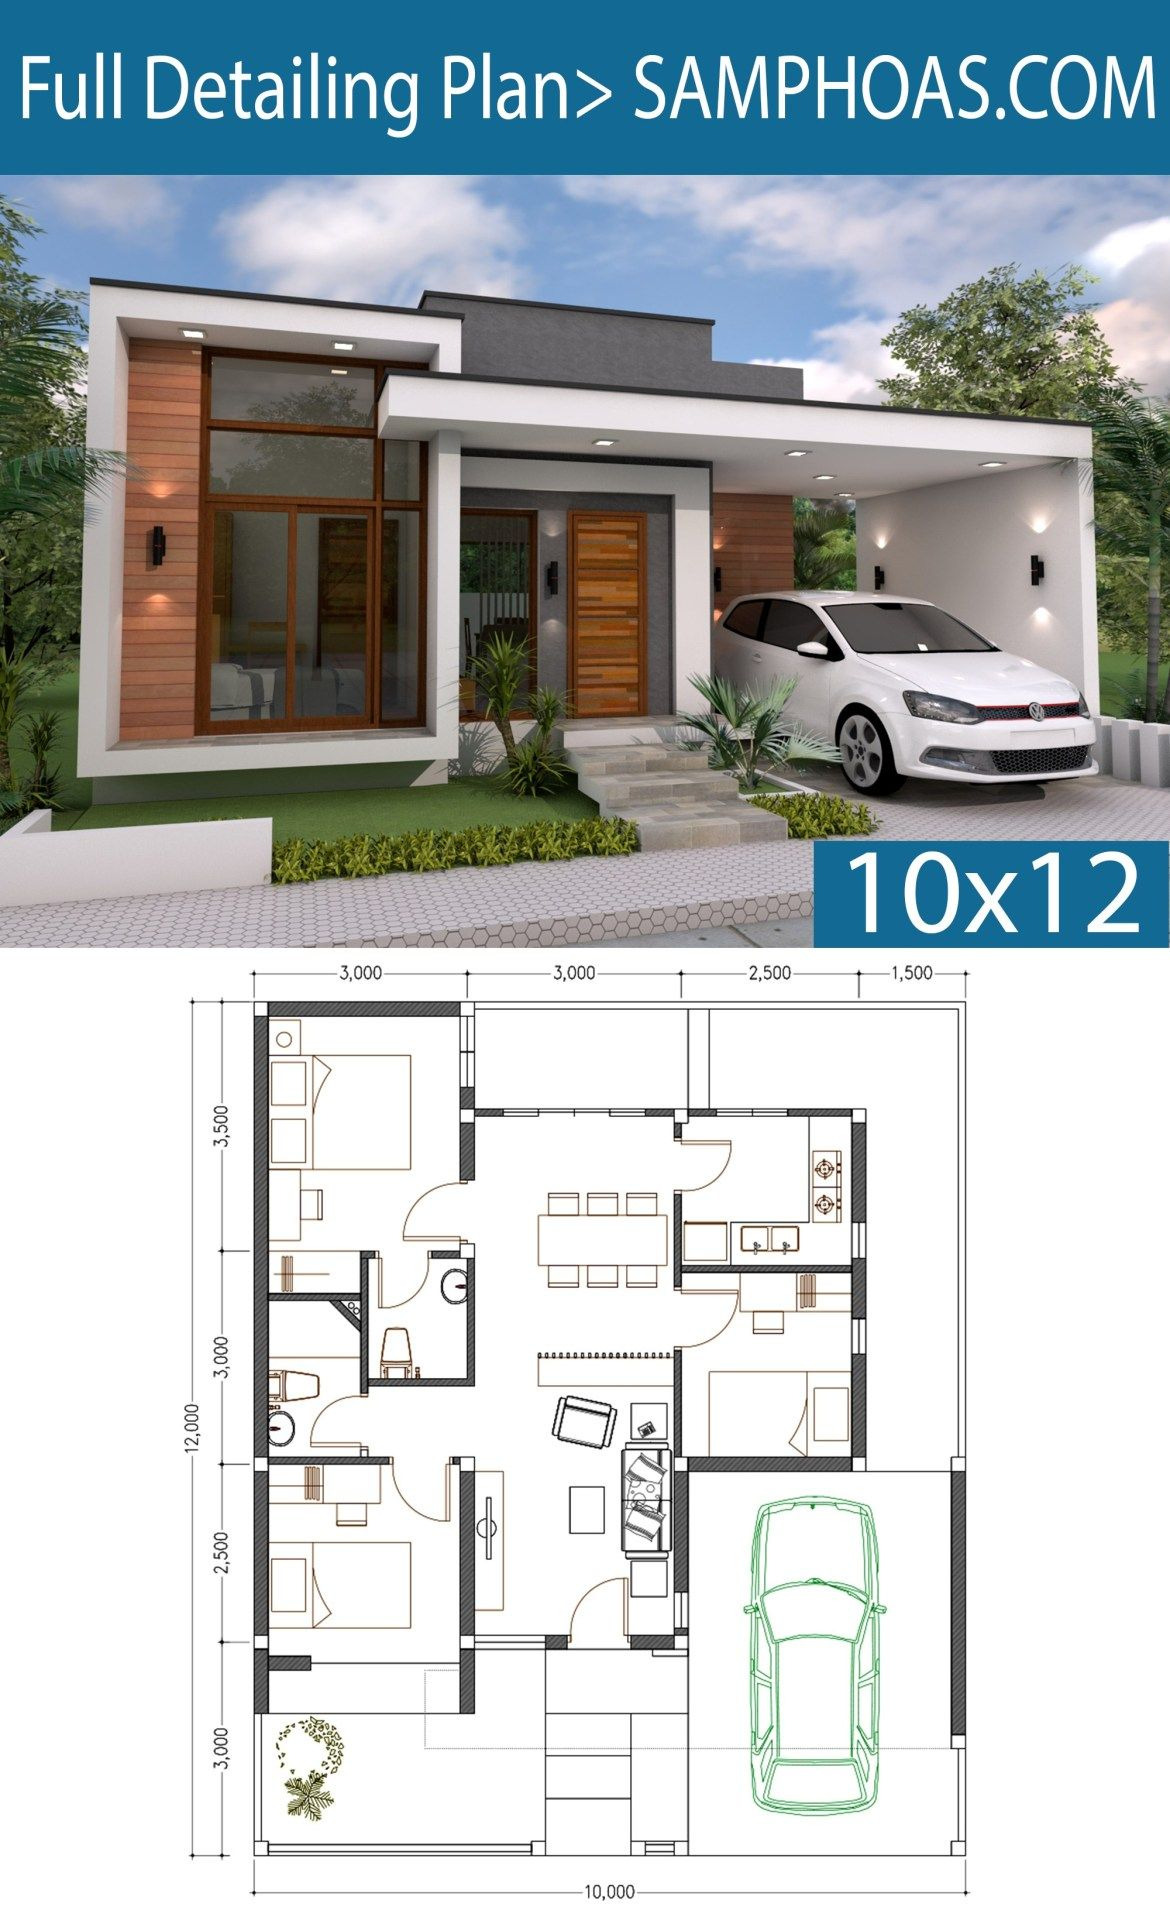 House Plans with Simple Roof Designs Lovely 3 Bedrooms Home Design Plan 10x12m